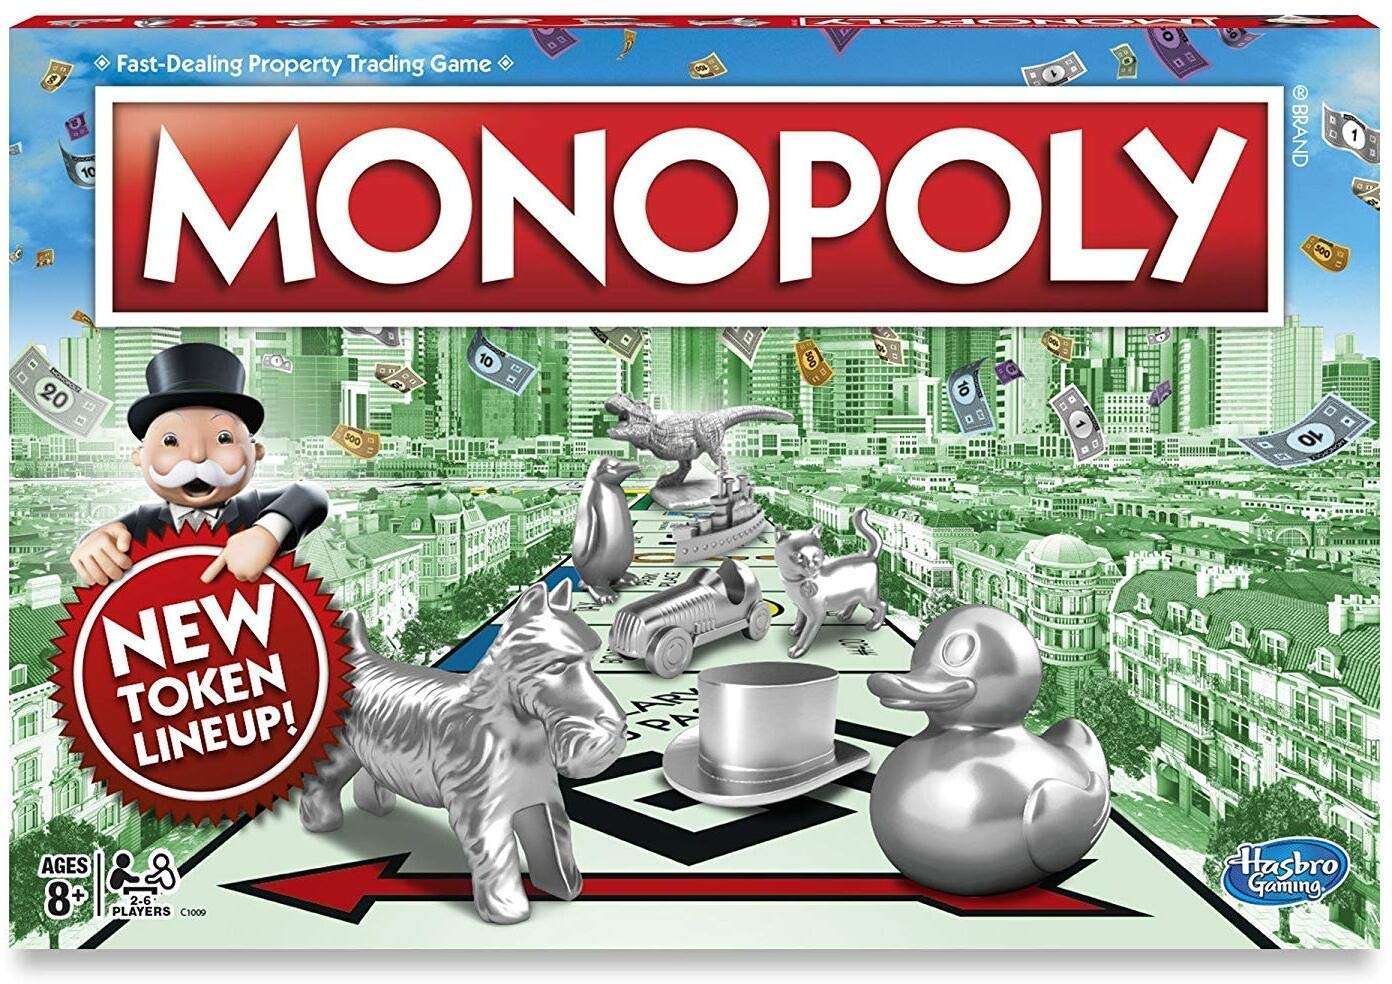 Master Monopoly In Our Comprehensive Guide To Understand The Game